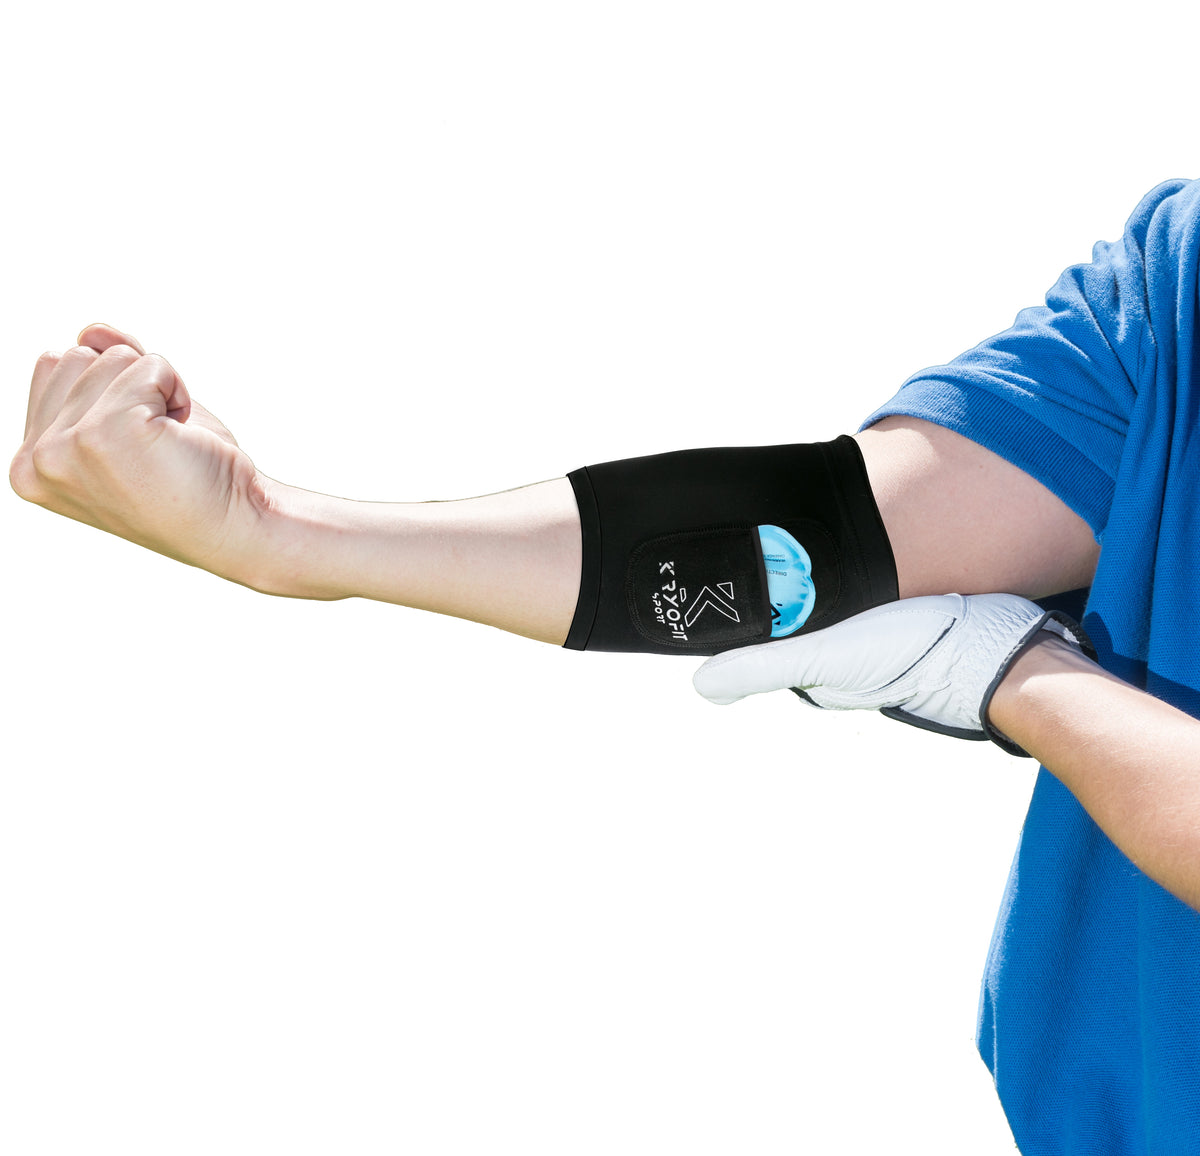 Kryofit Cold Compression Sleeves - Eliminate Your Pain & Swelling In The Elbow, Knee, Bicep!